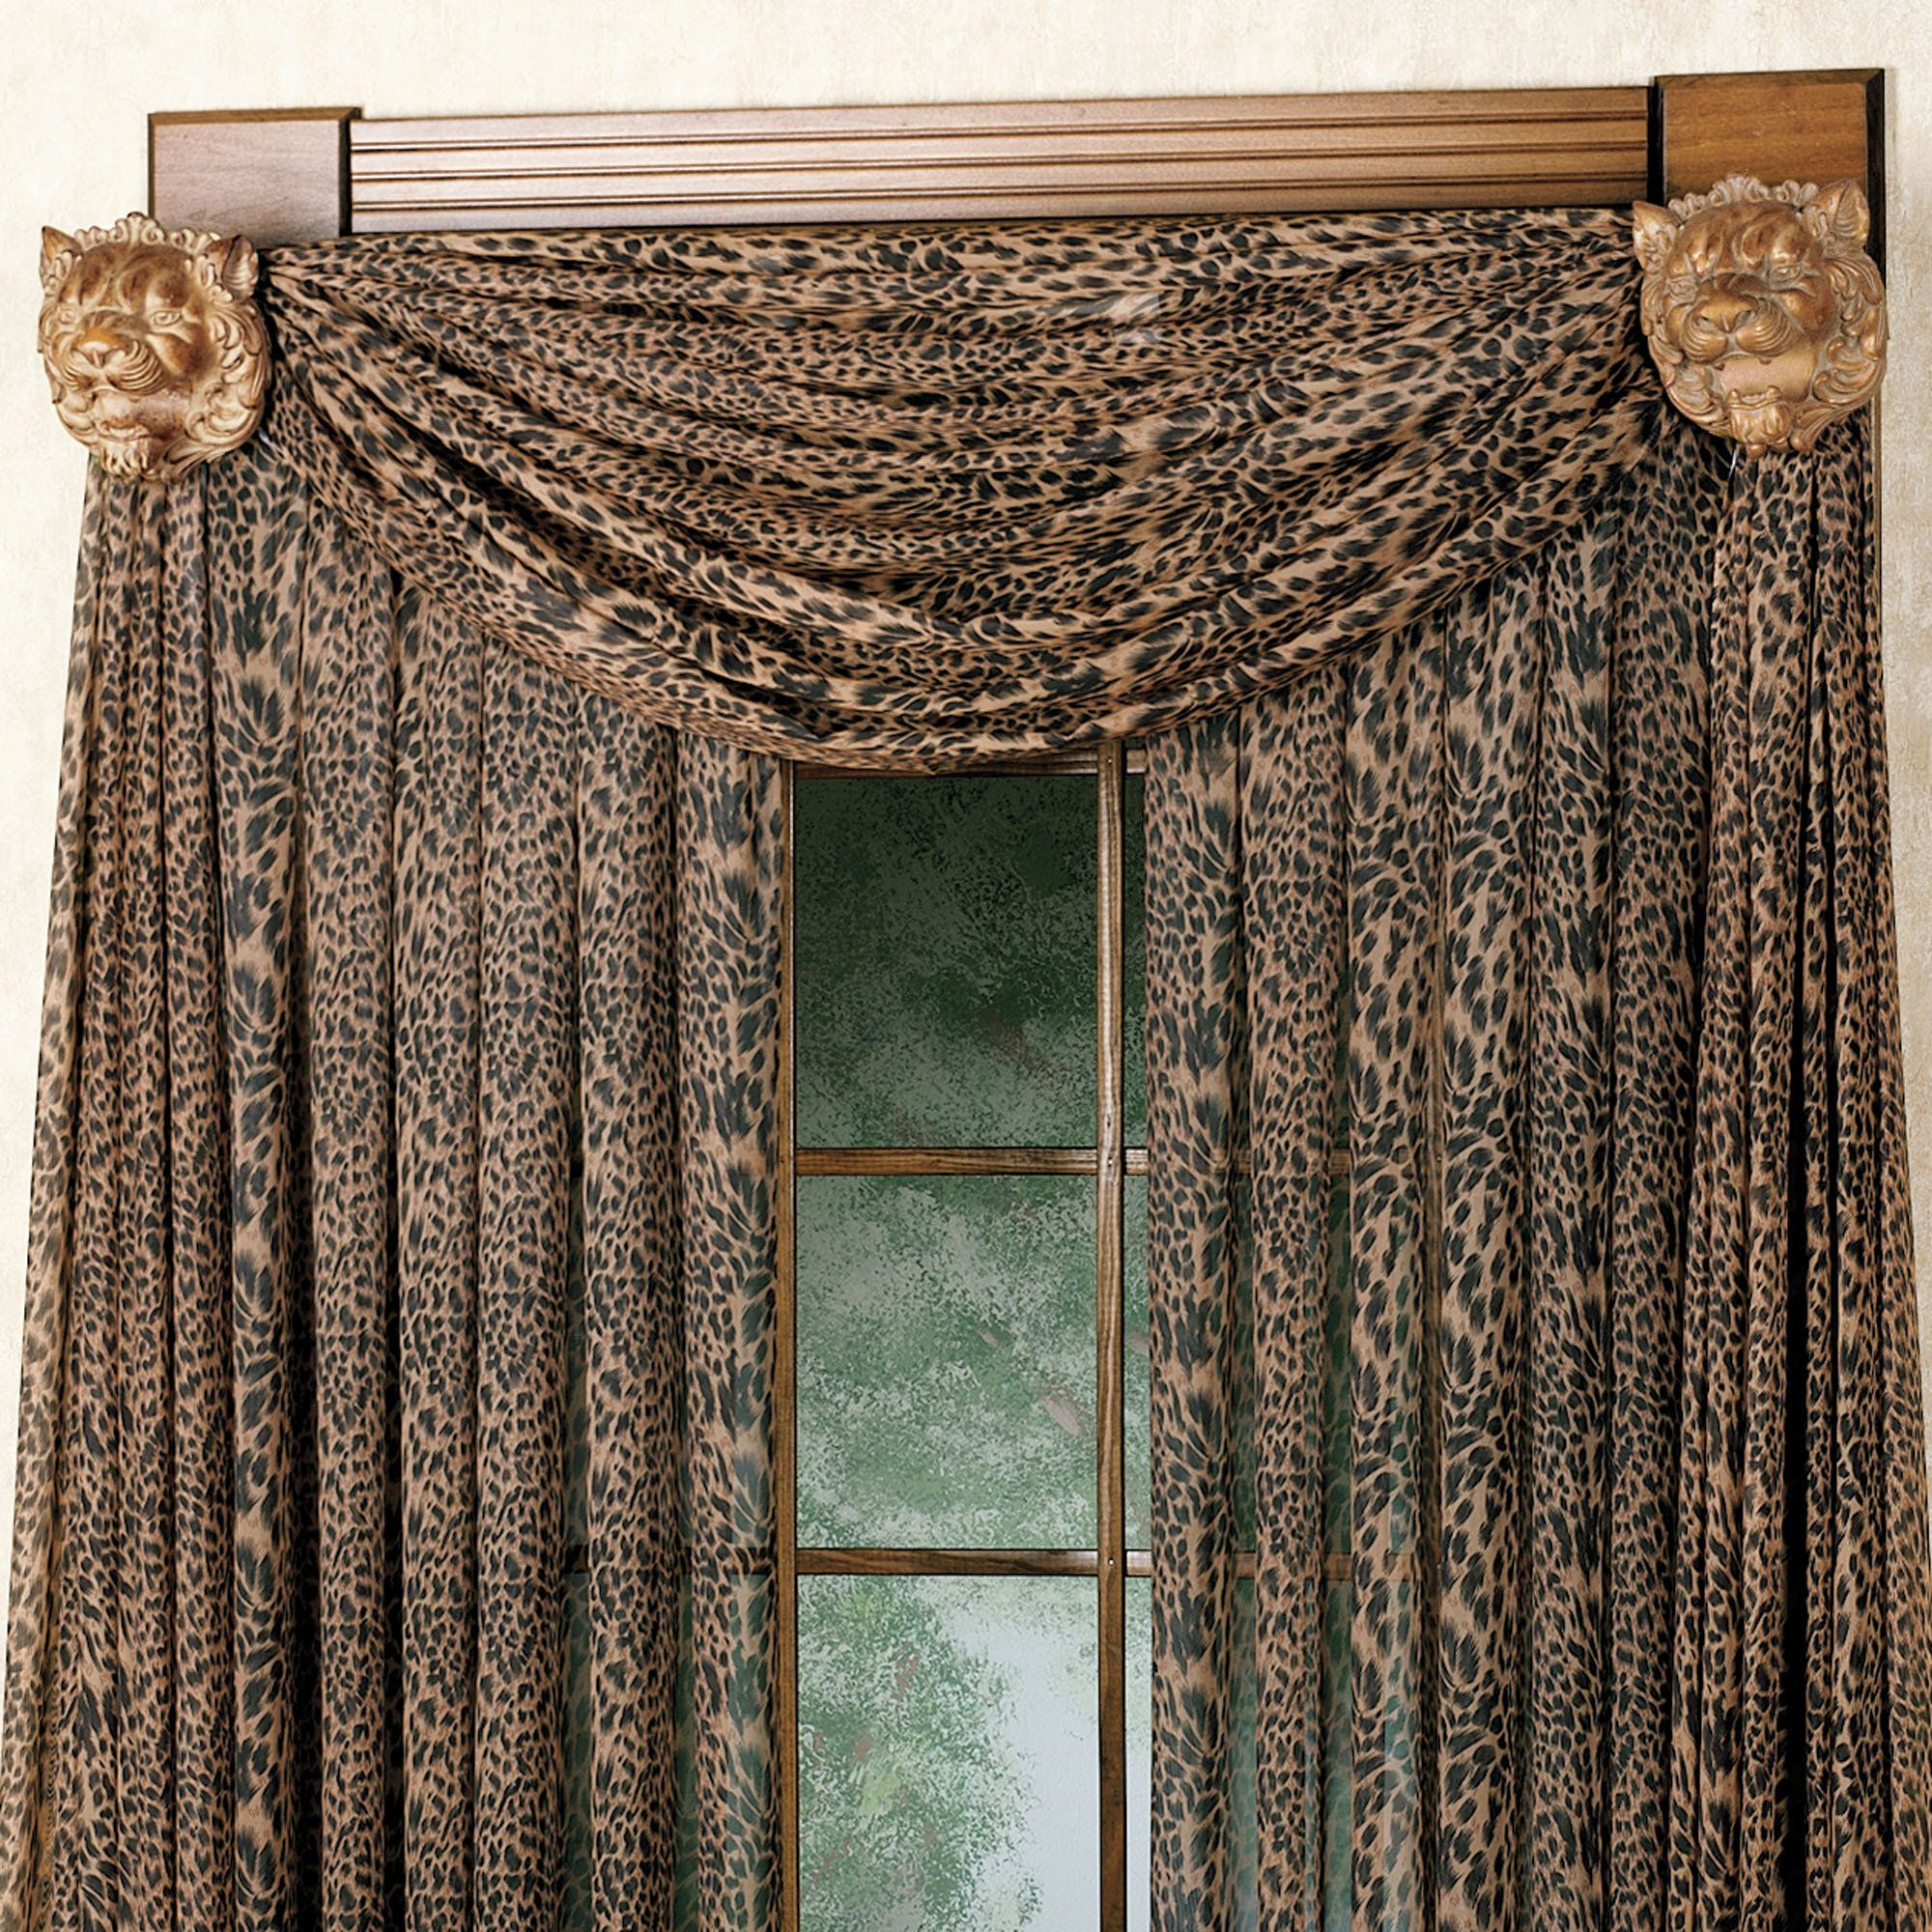 Leopard Curtains And Valance Want Them For My Living Room